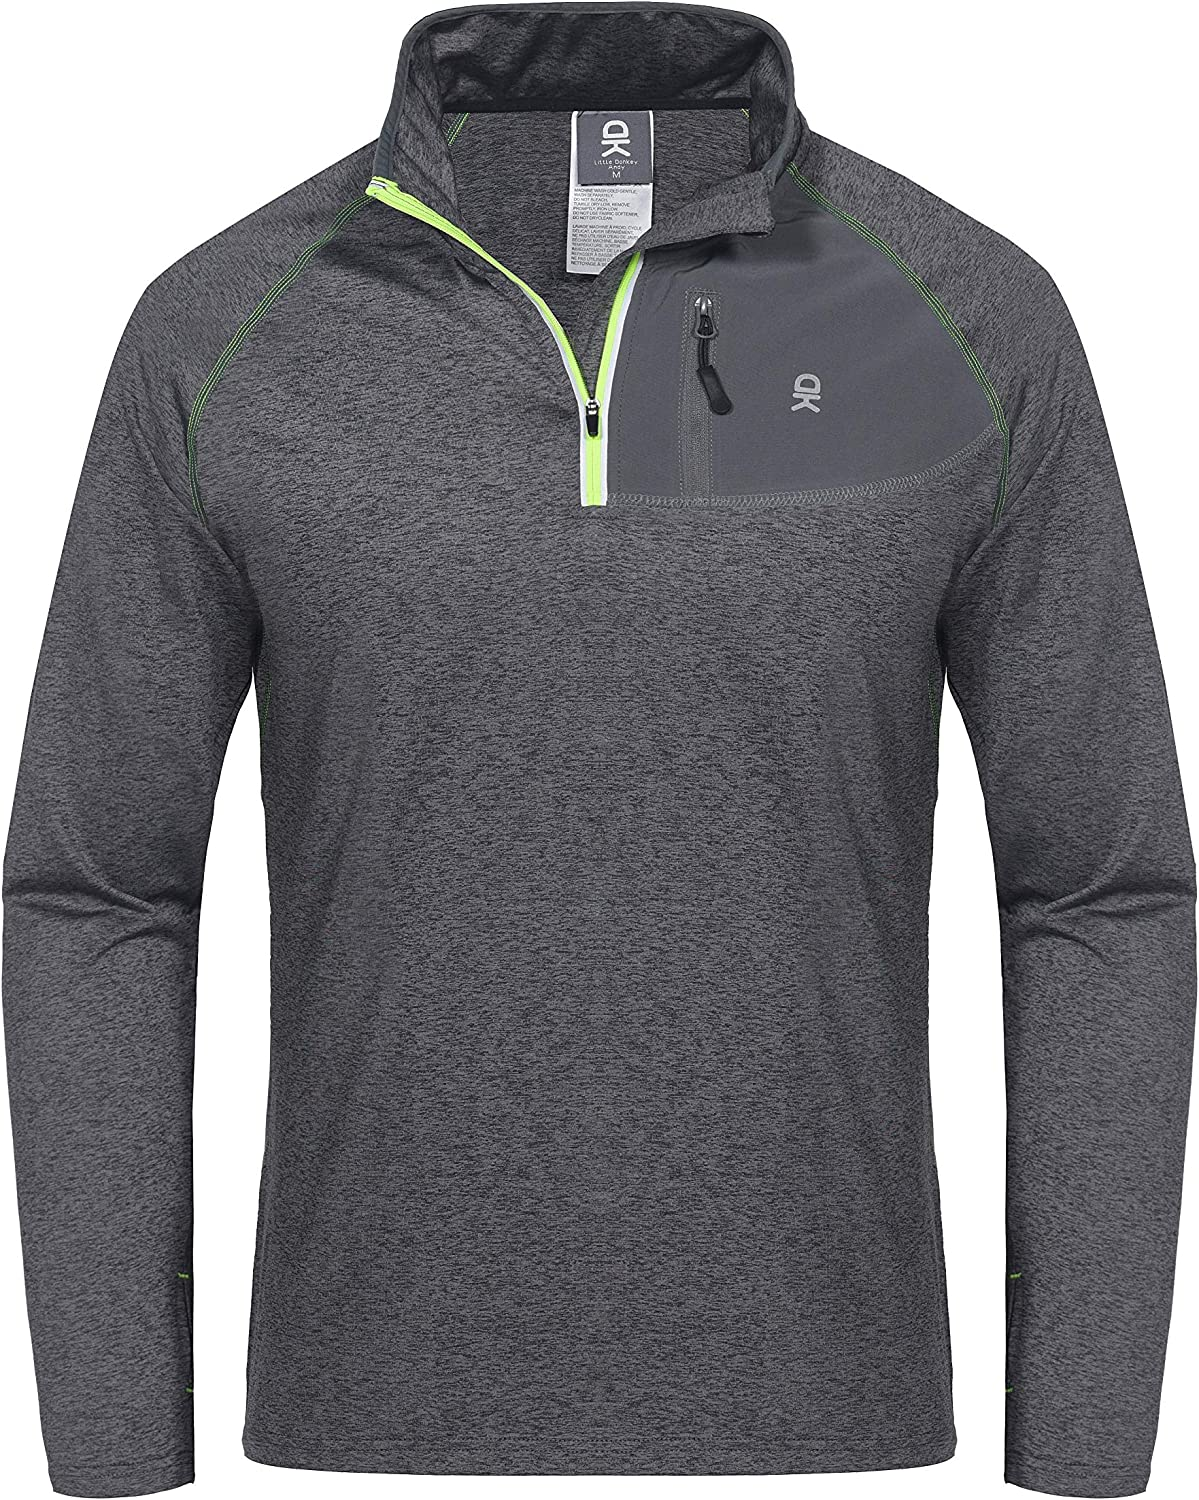 Little Limited price sale Donkey Andy Men's Long Sleeve Lightweight Runni Quick New product! New type Dry